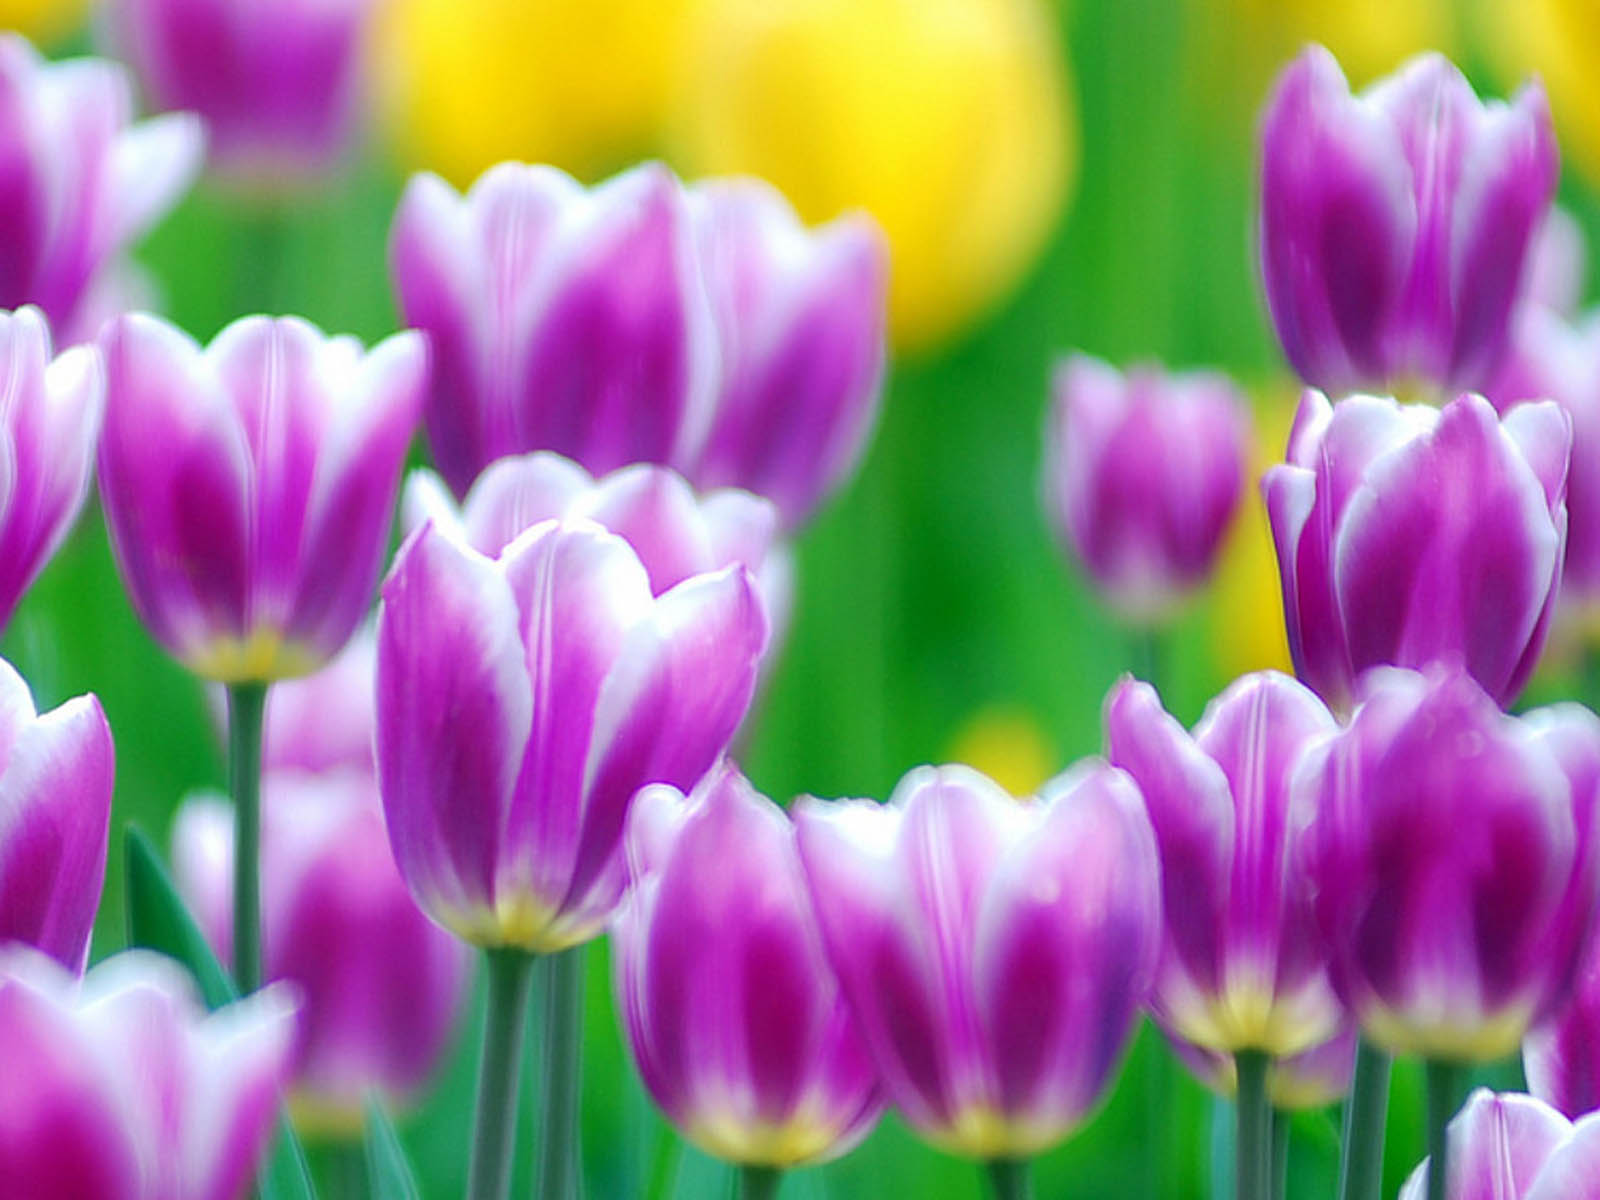 purple tulips hd wallpaper - photo #18